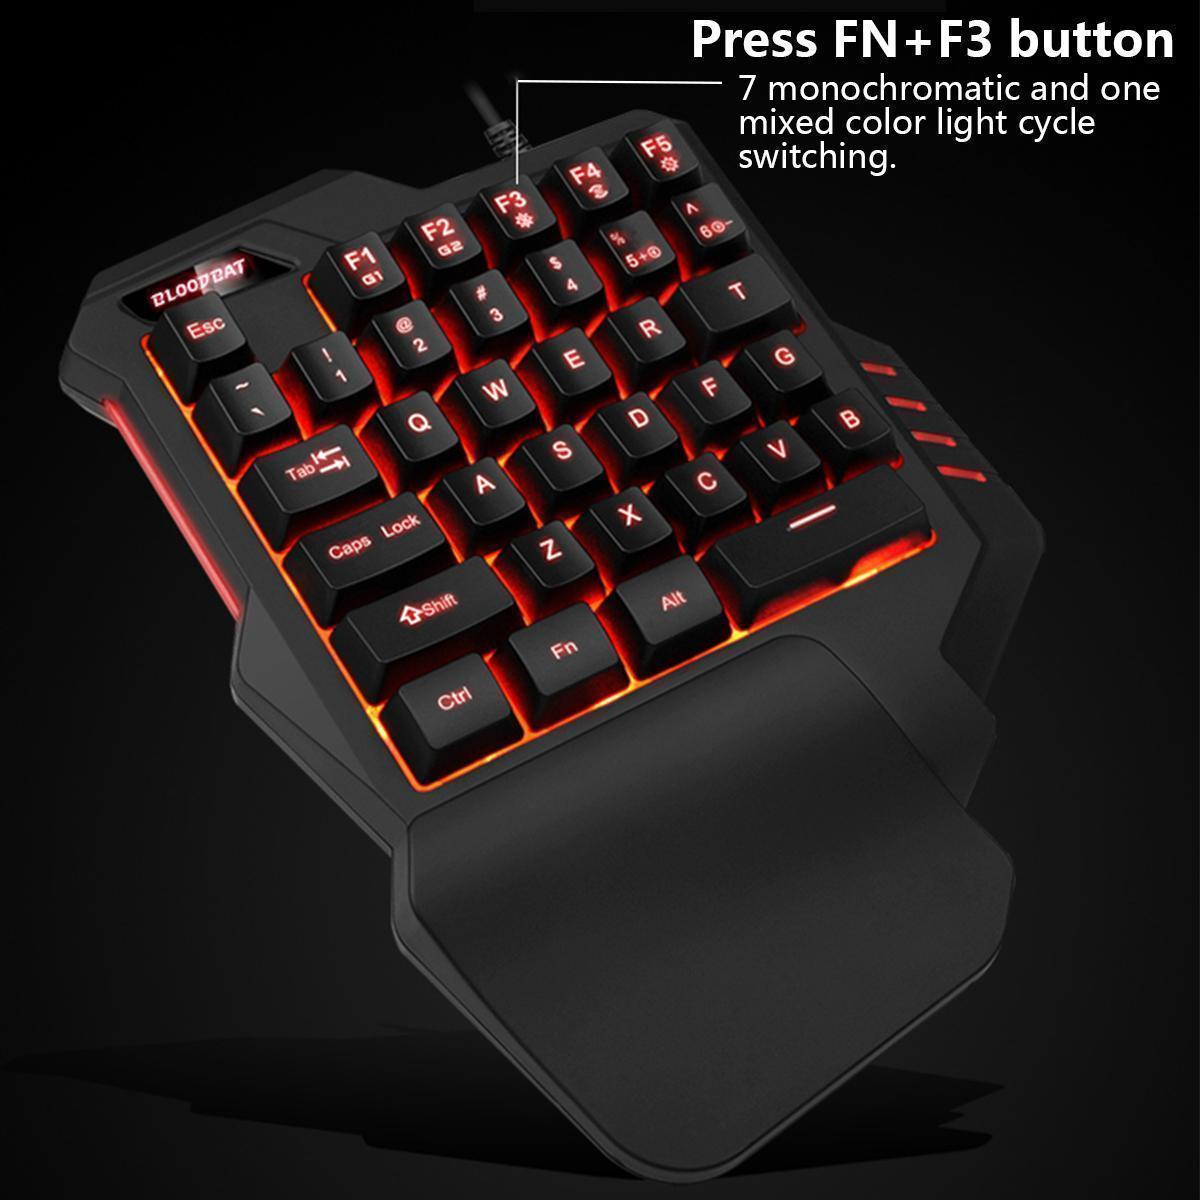 Best Prices Wired Keyboard Intro Km490w : lissome led mechanical one handed keyboard wired gaming mouse for game lol dota pubg buy ~ Russianpoet.info Haus und Dekorationen